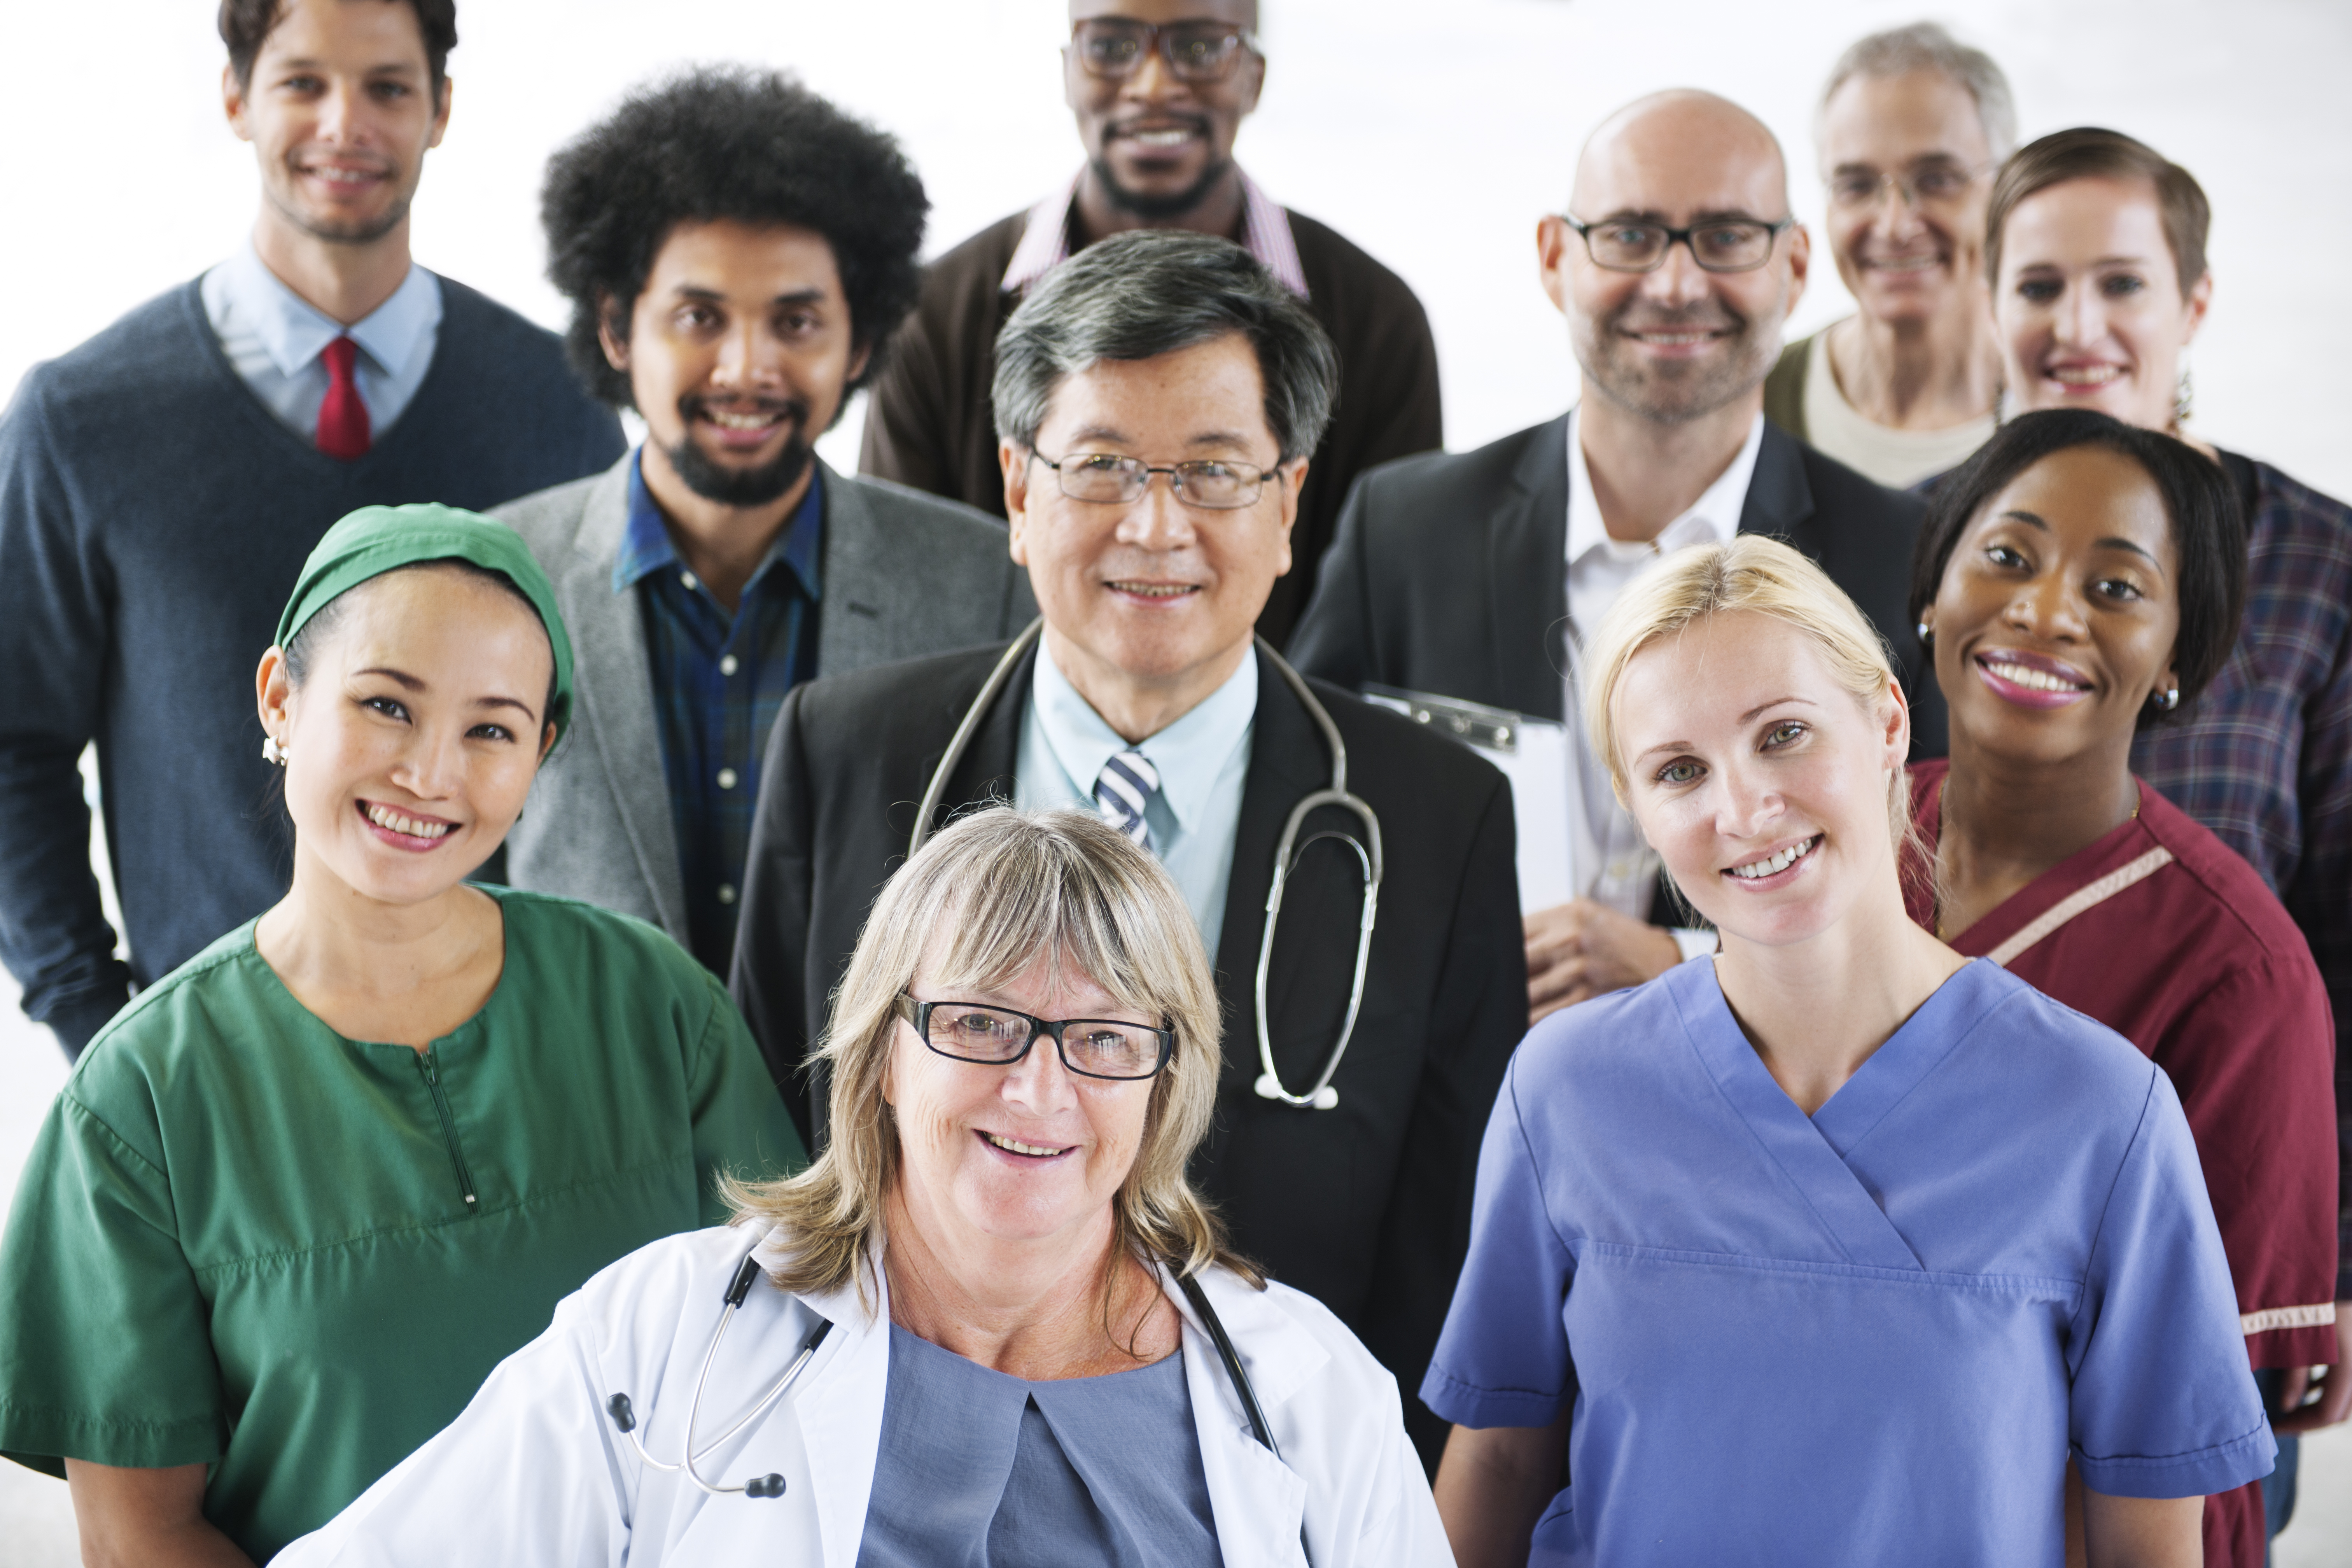 A group of smiling medical professionals